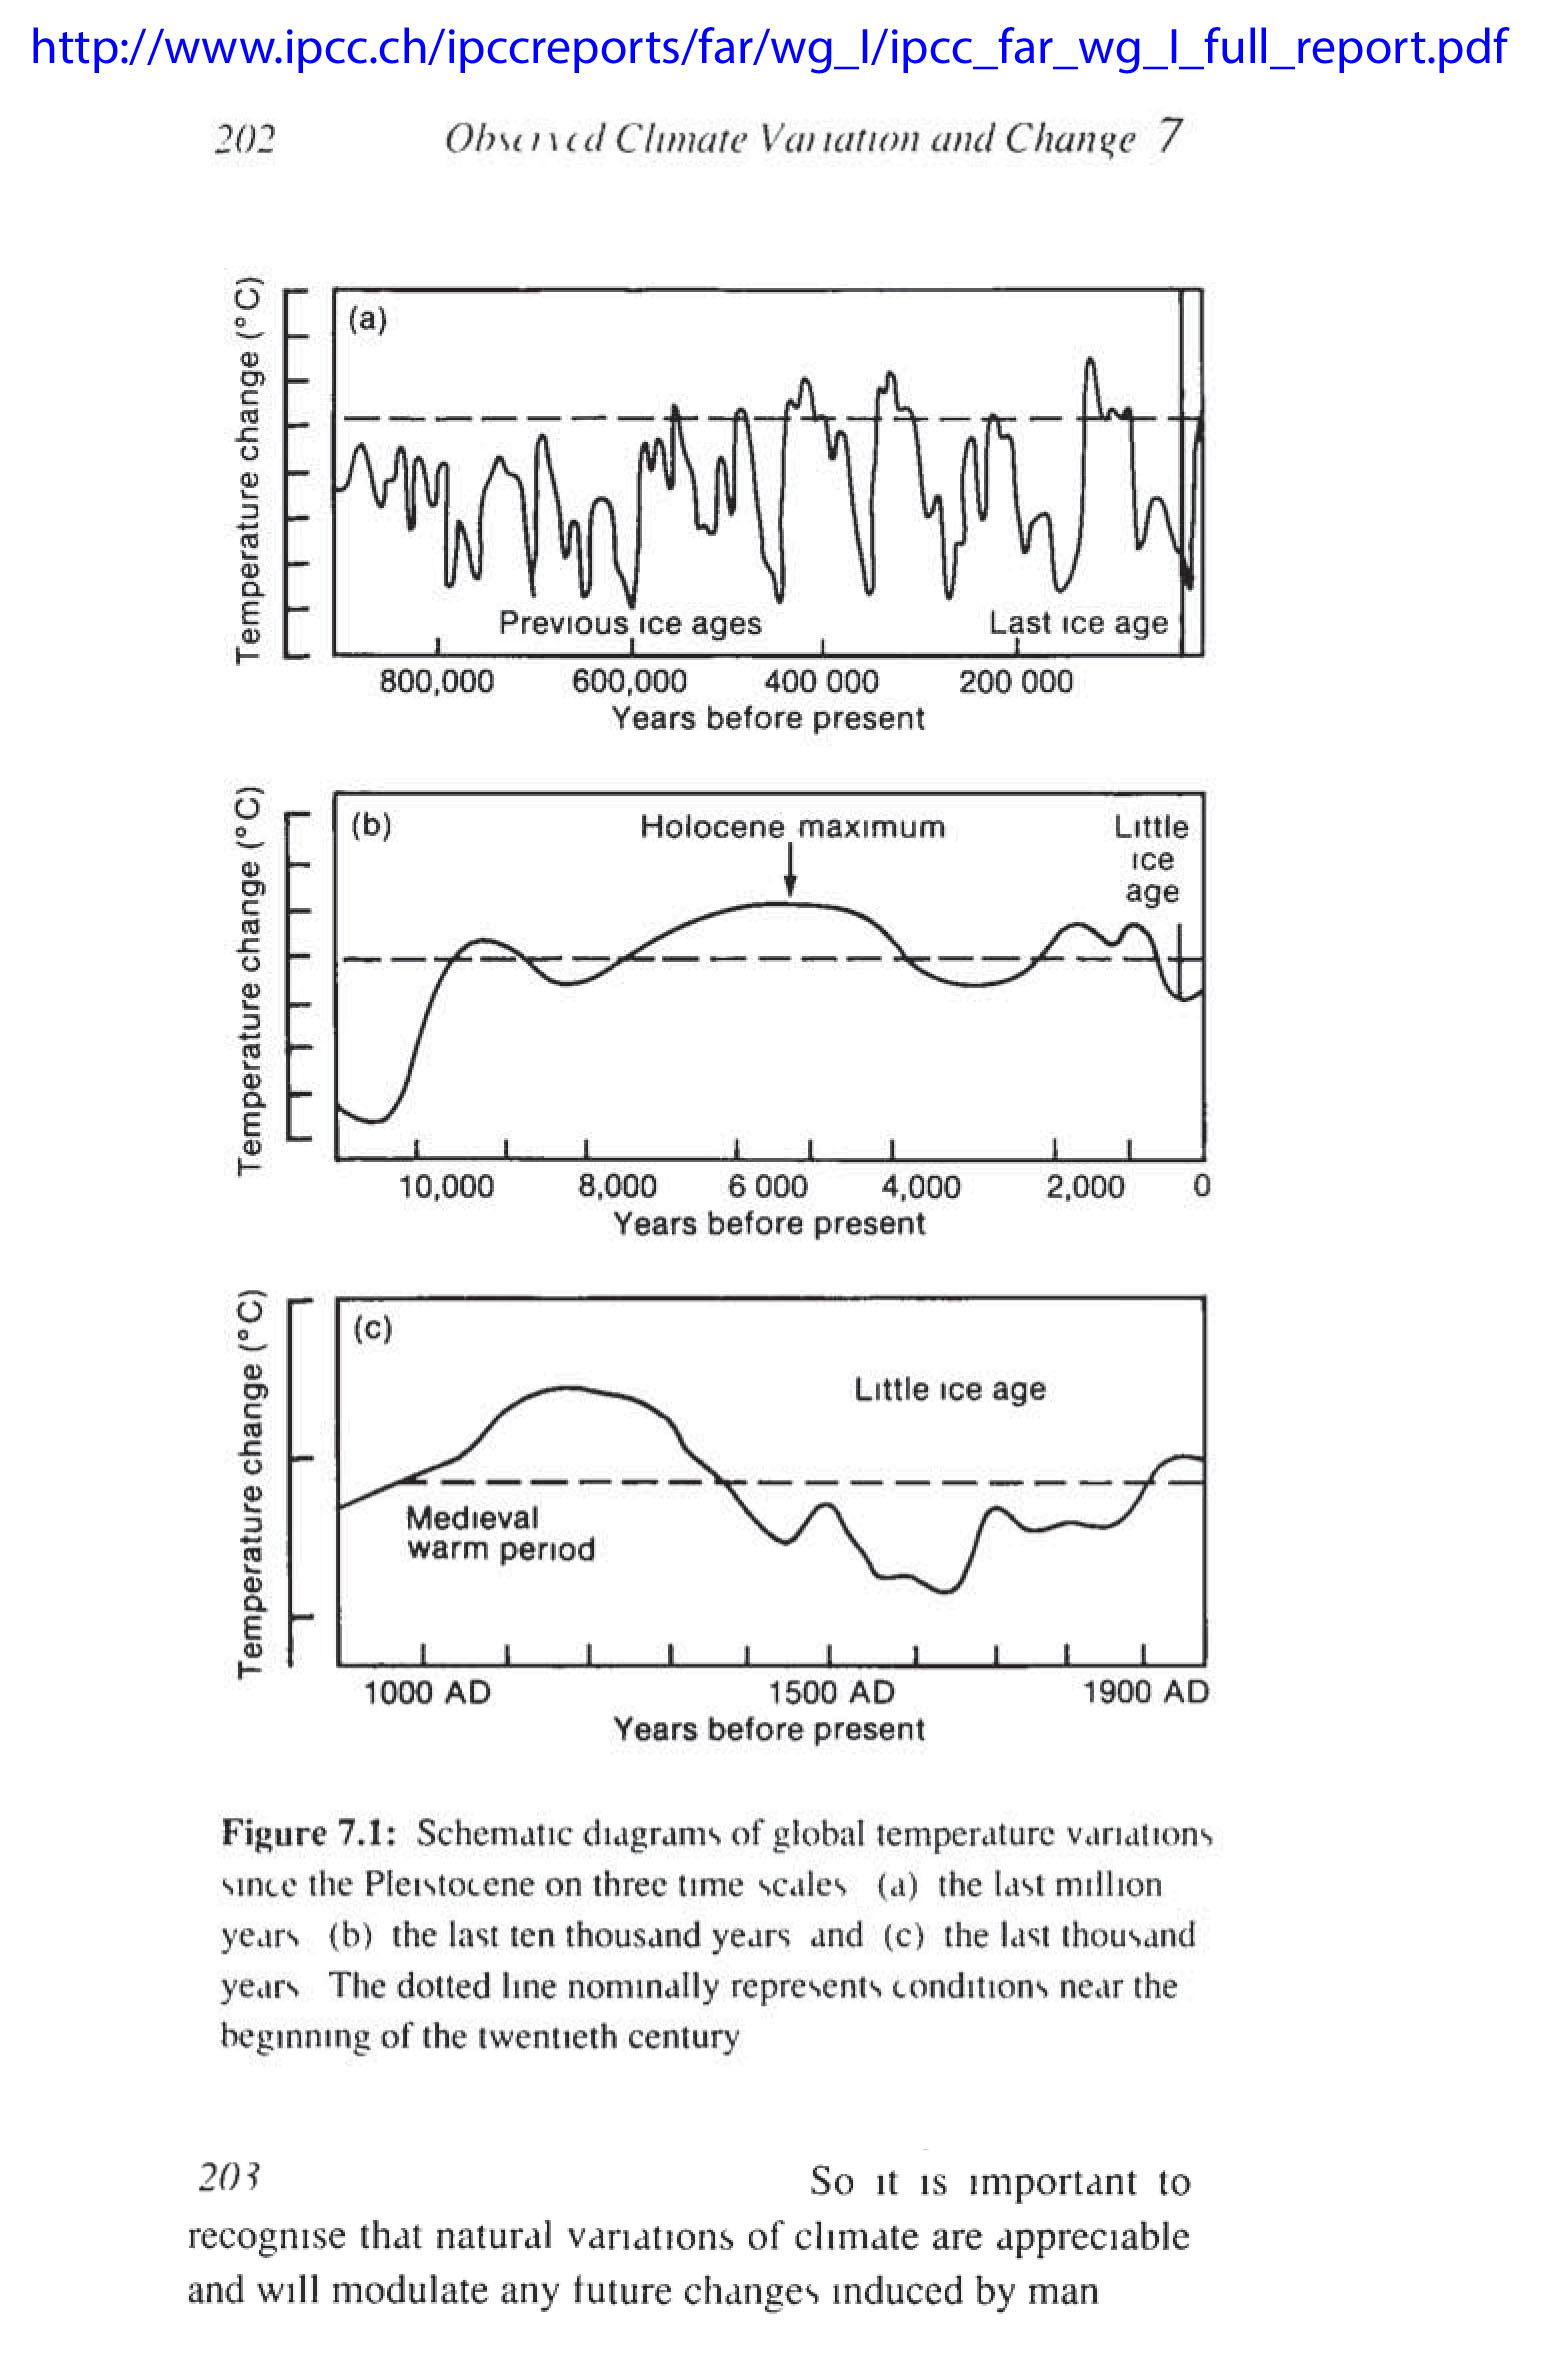 ipcc_far_wg_I_full_report.pdf